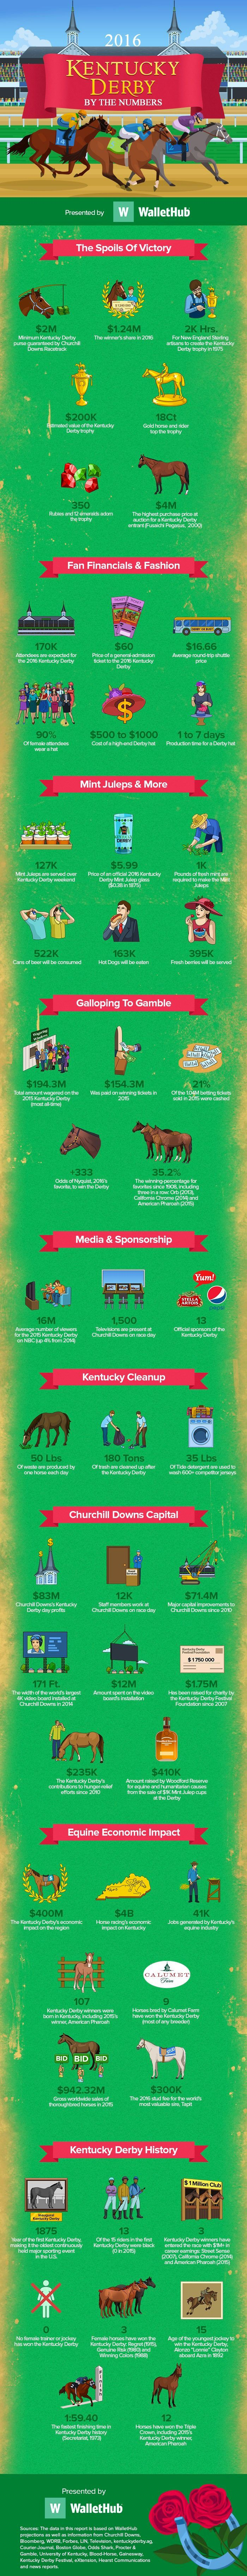 Kentucky Derby (Infographic)